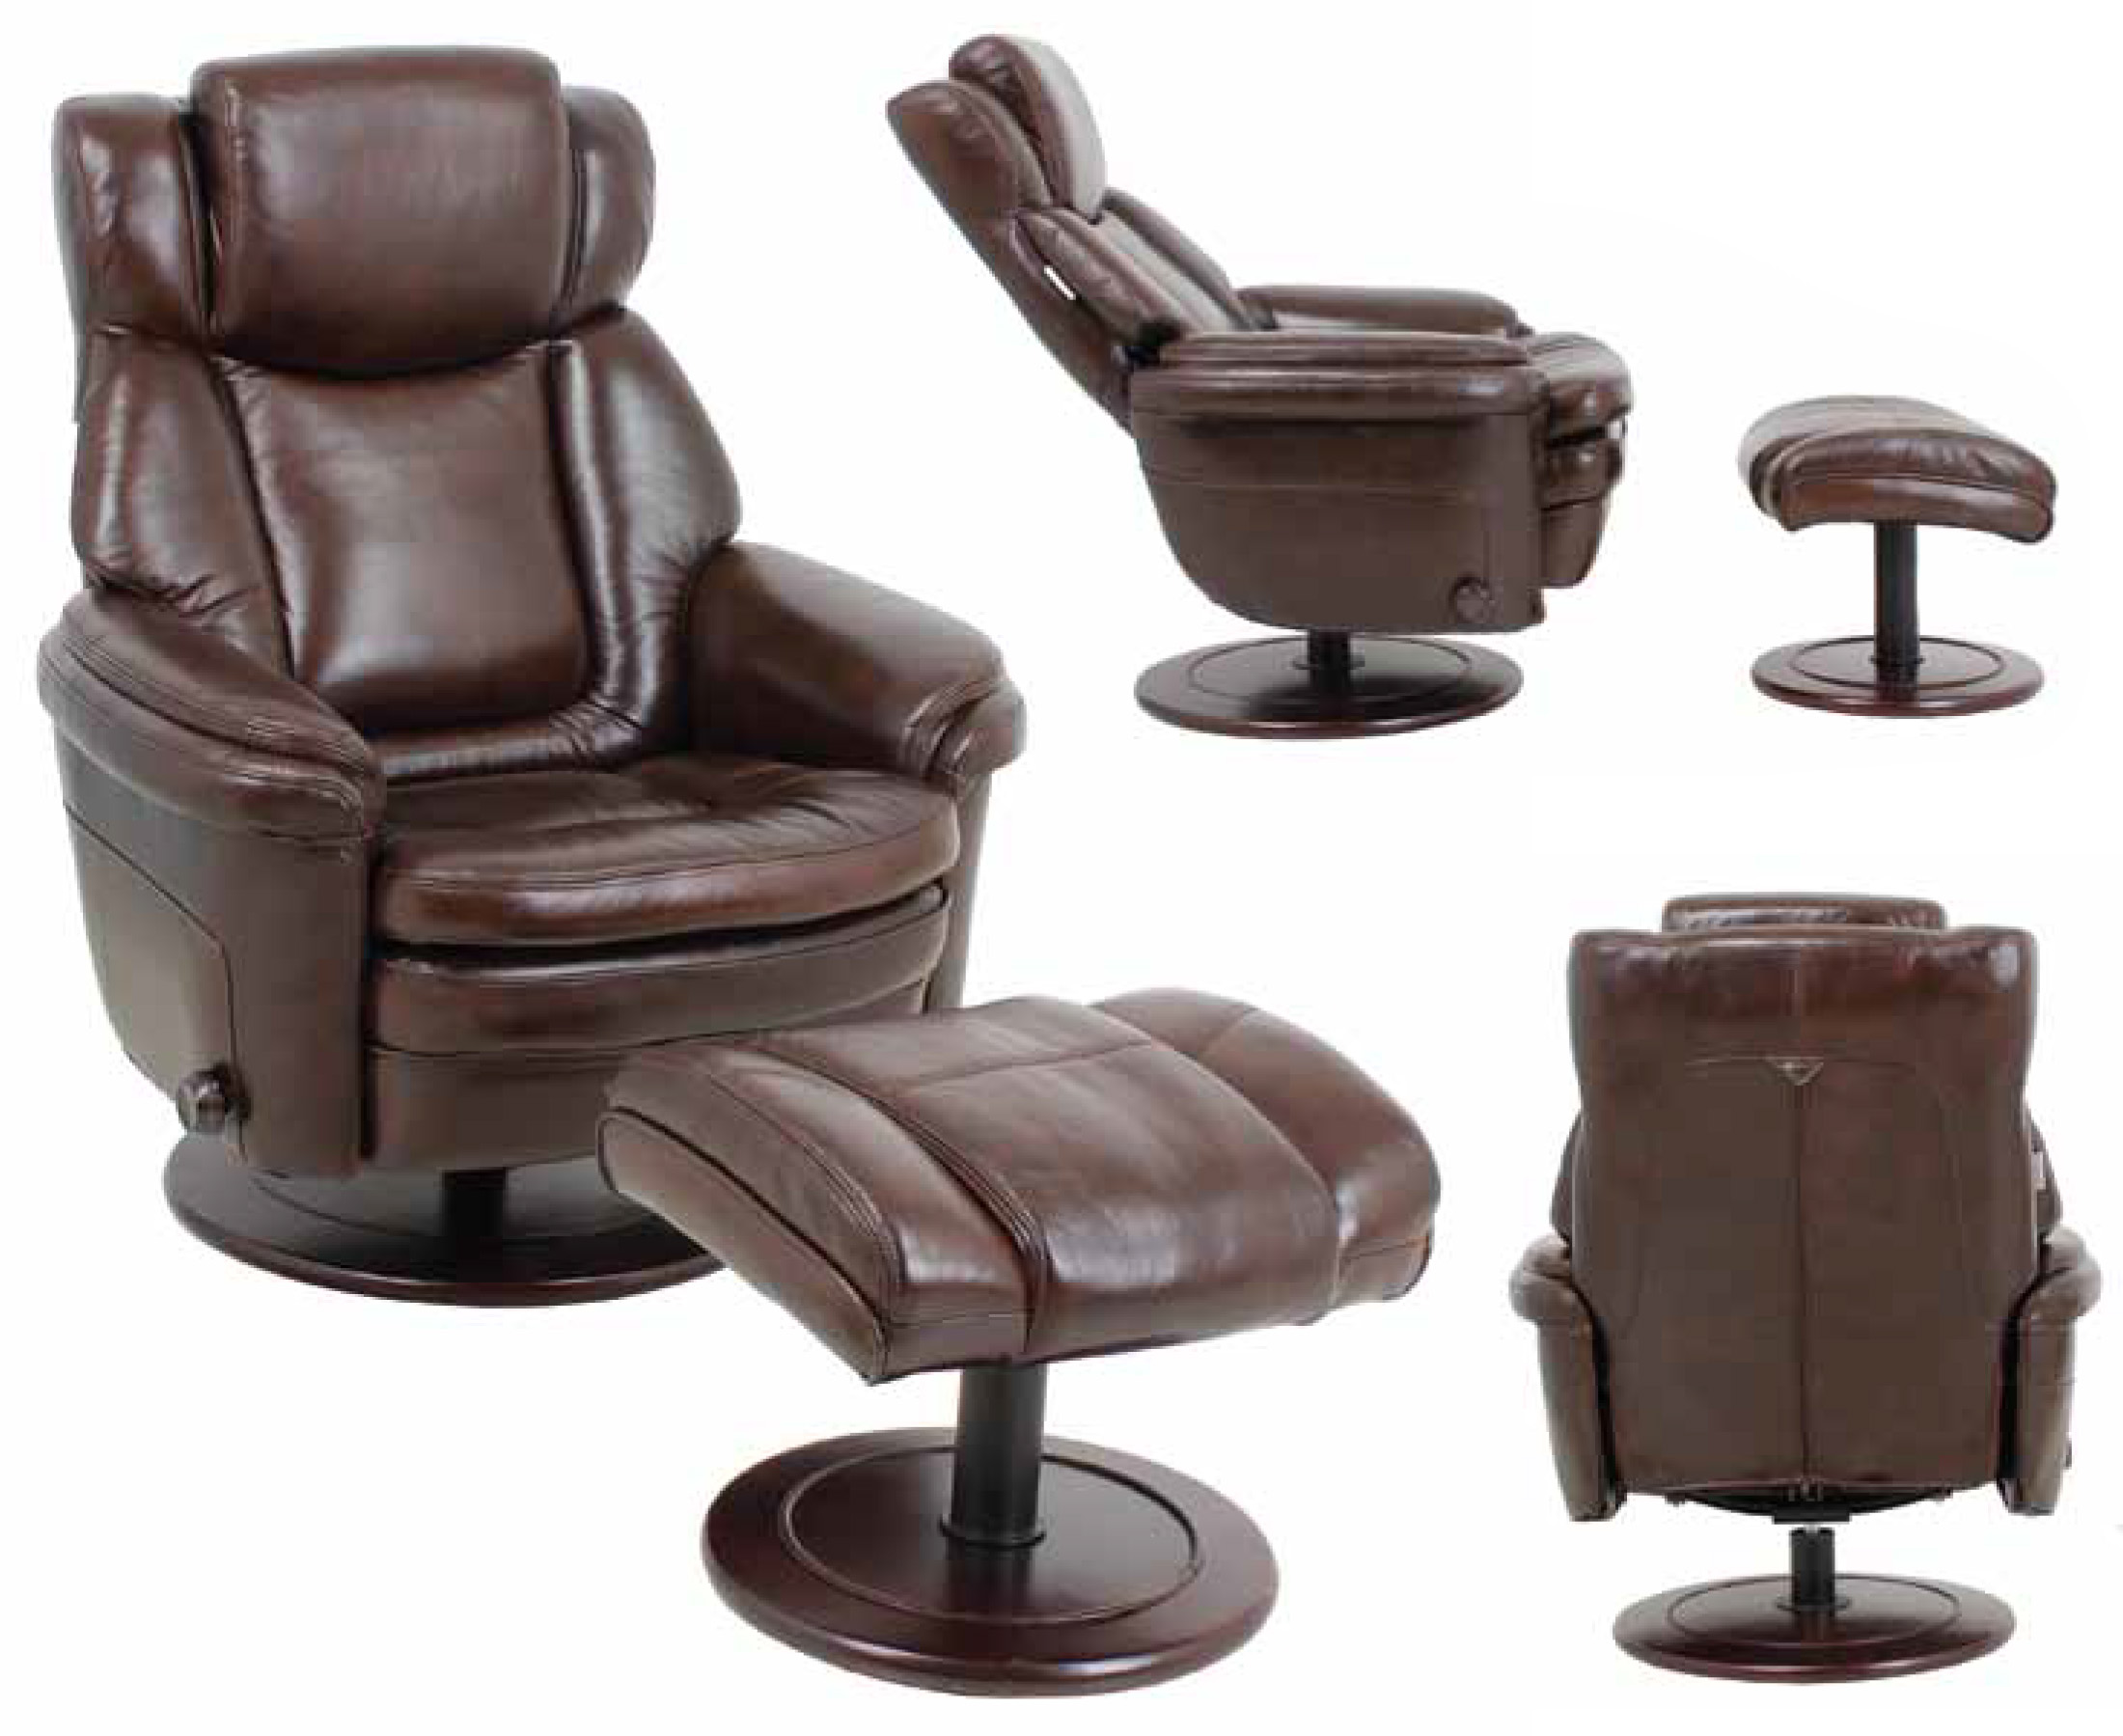 Barcalounger Leather Eclipse II Recliner Chair And Ottoman